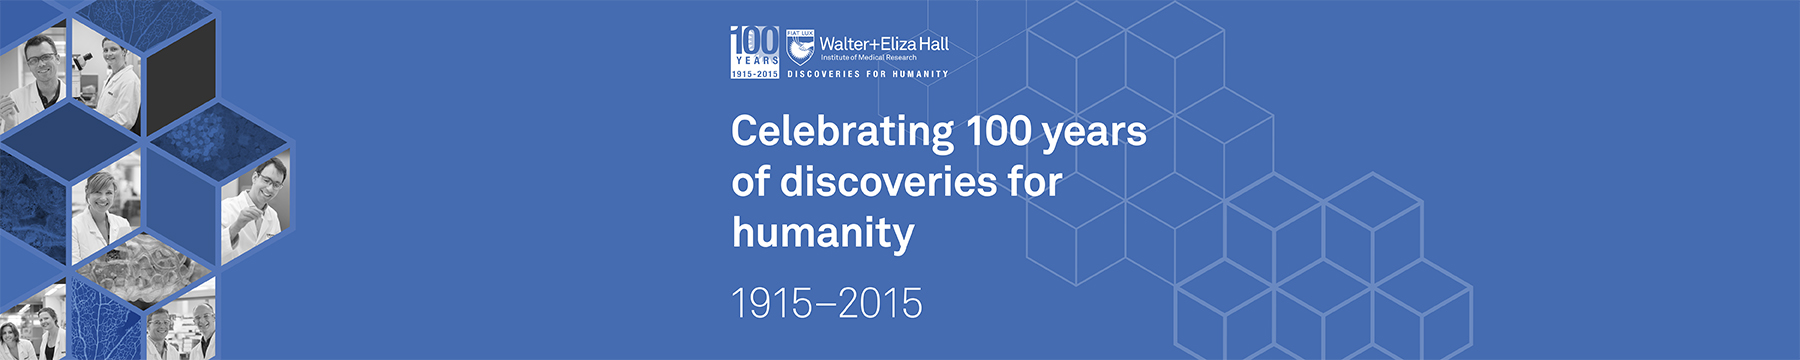 Celebrate 100 years of discoveries